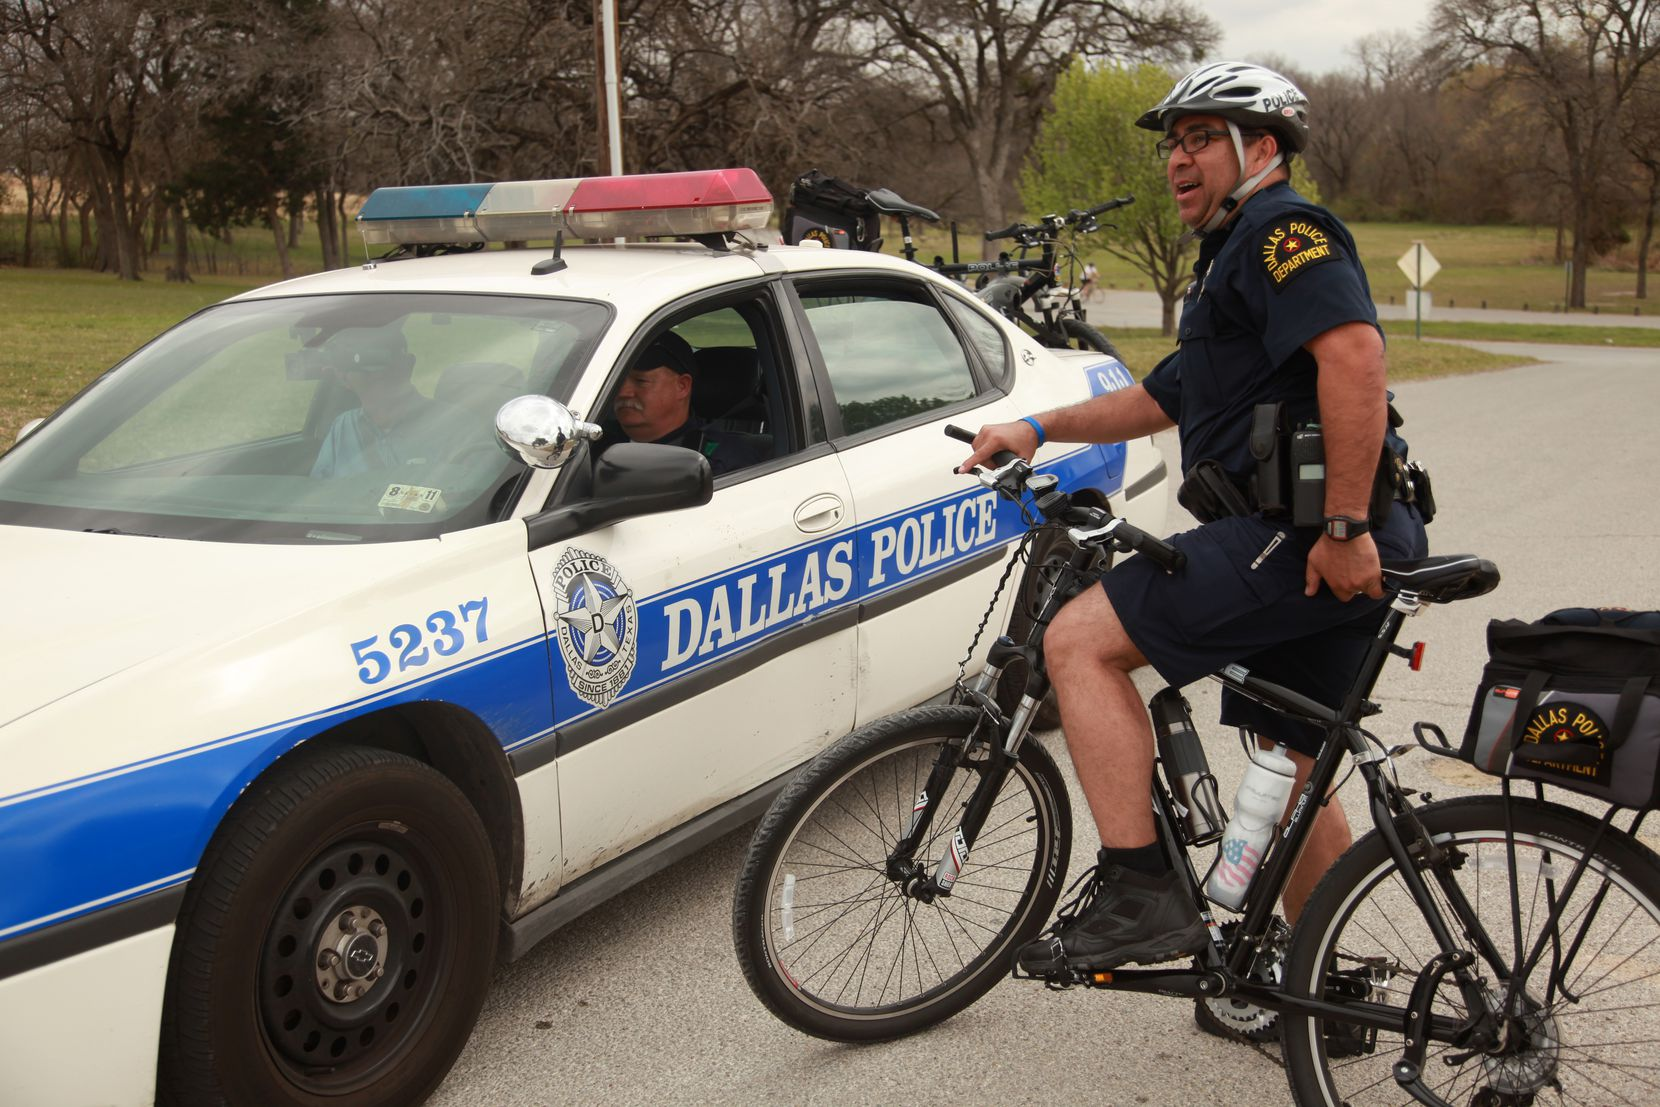 Dallas police officers Juan Amaya (on bike) and Scot Jenkins talked during a patrol  around White Rock Lake in March 2011.